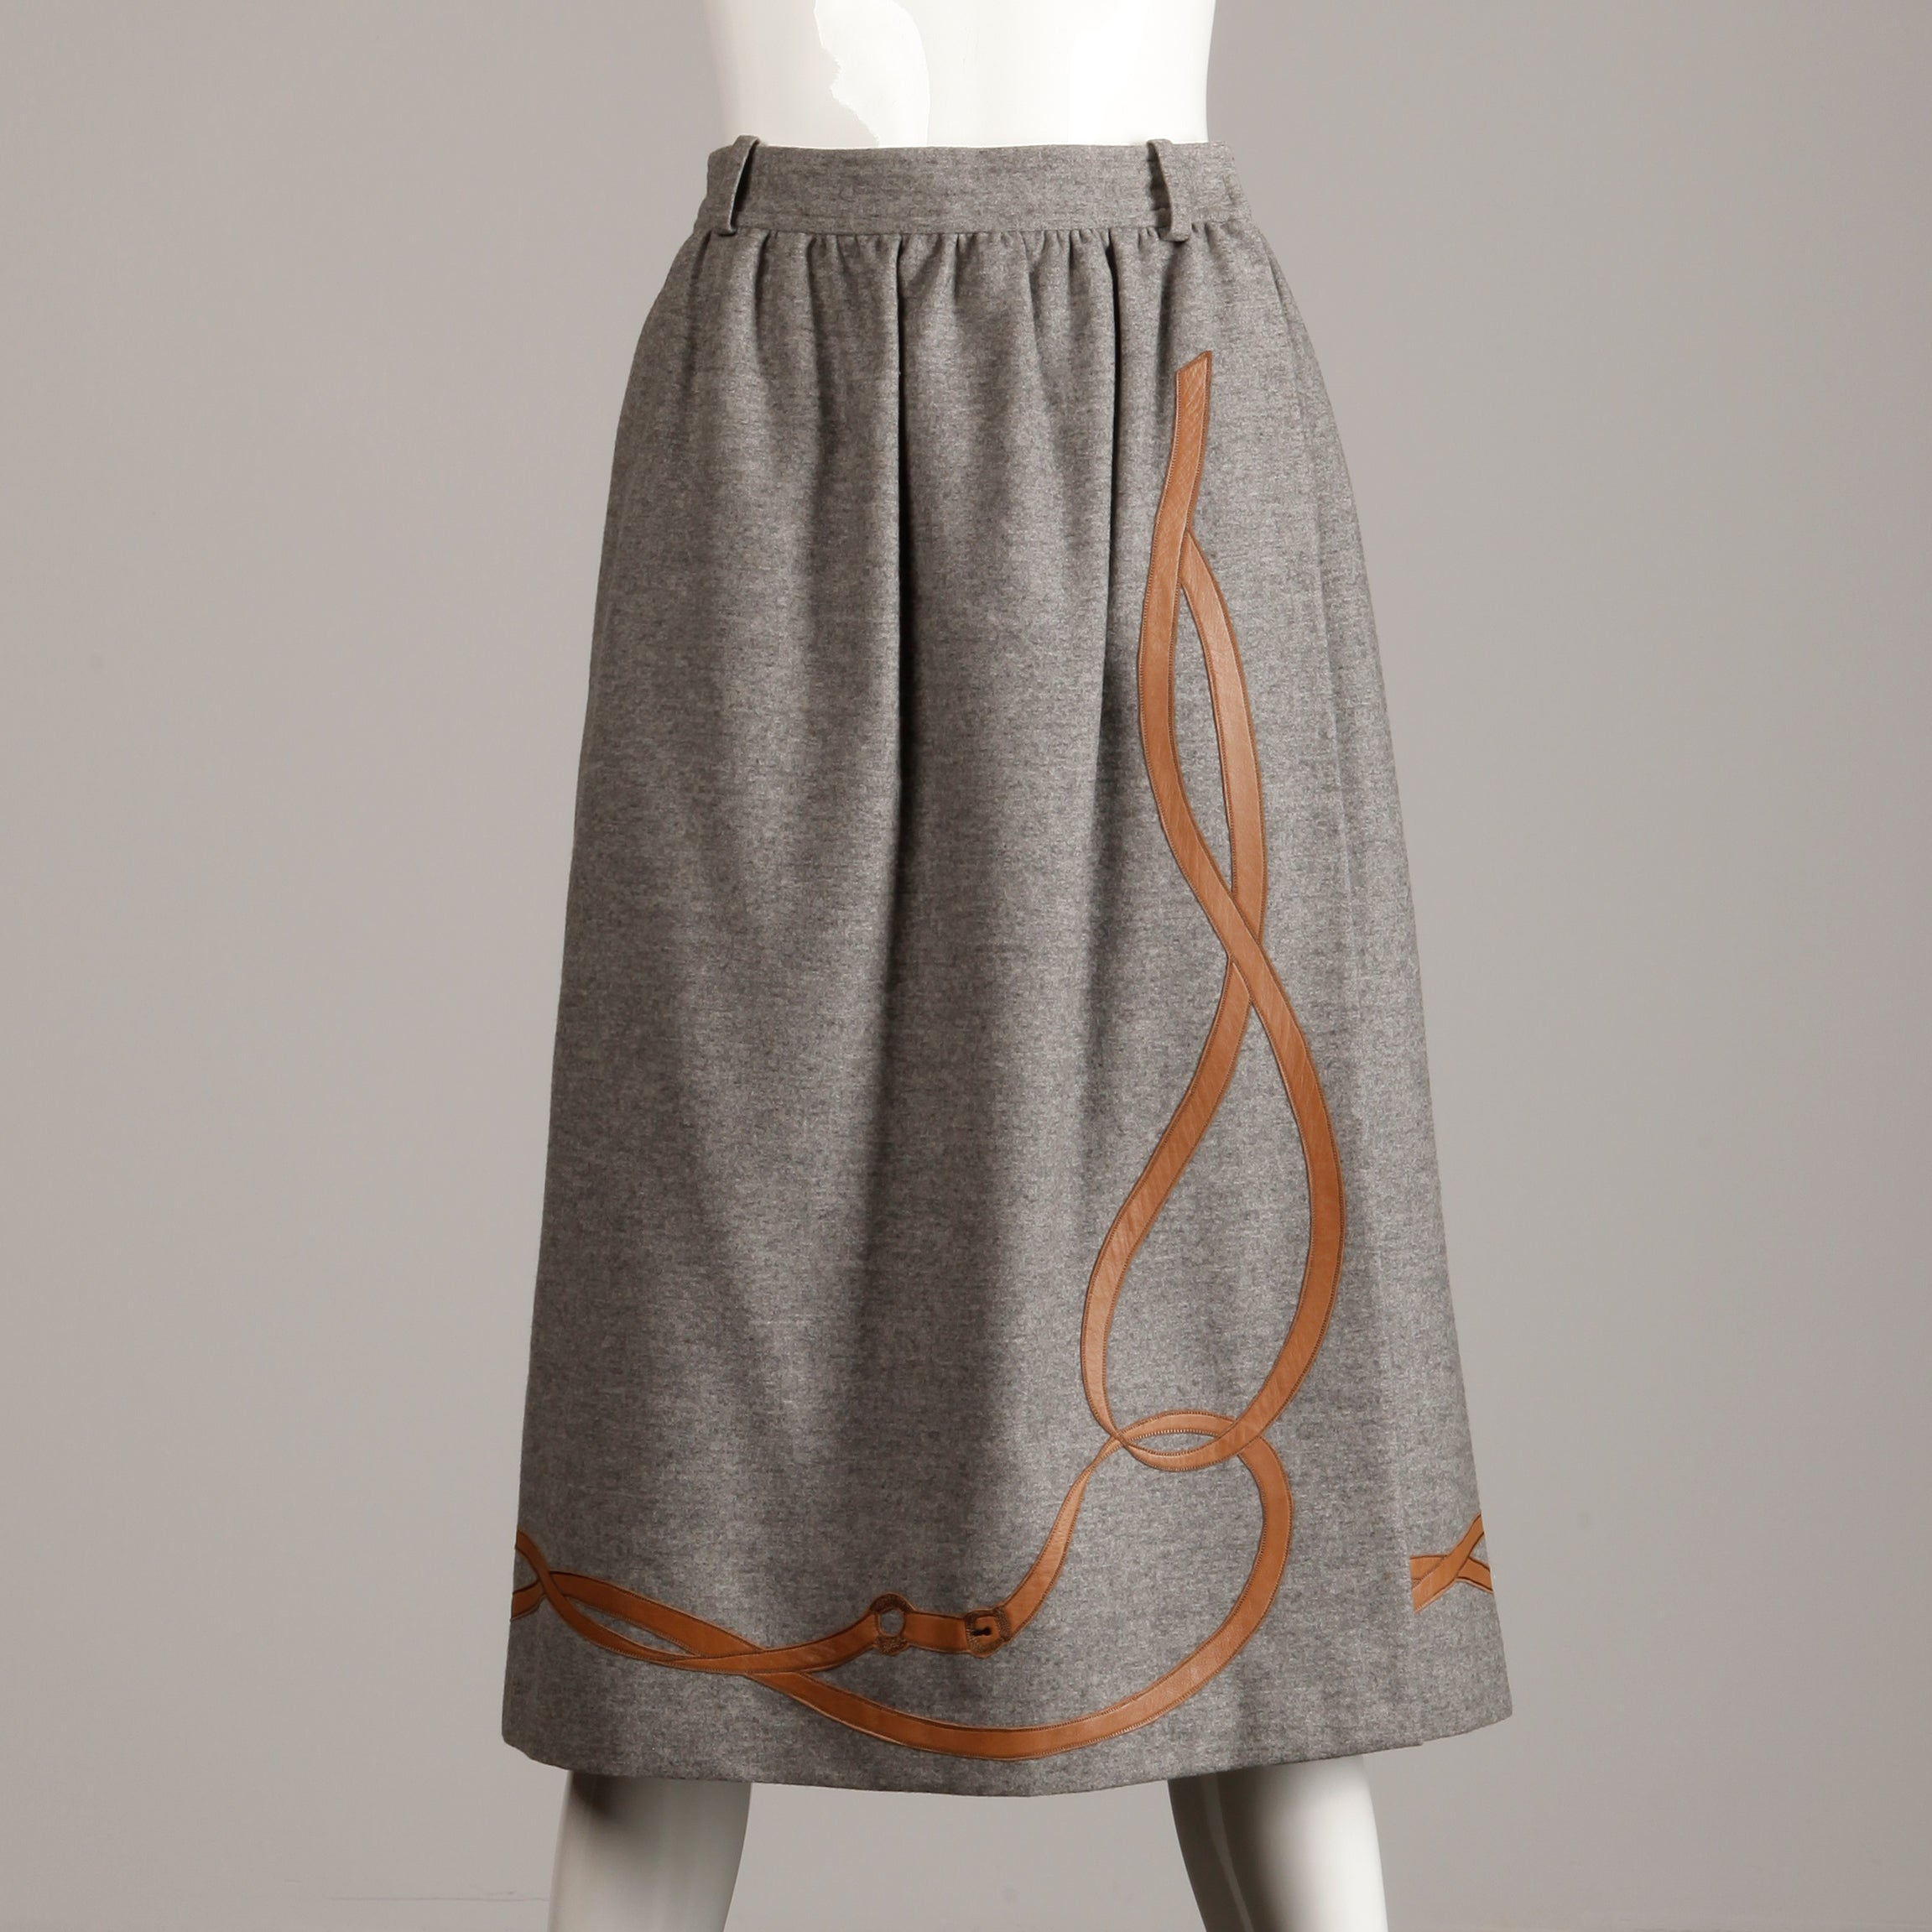 1221713119 1970s Gucci Vintage Gray Wool + Brown Leather Skirt with Horse Bit Buckle  Design For Sale at 1stdibs